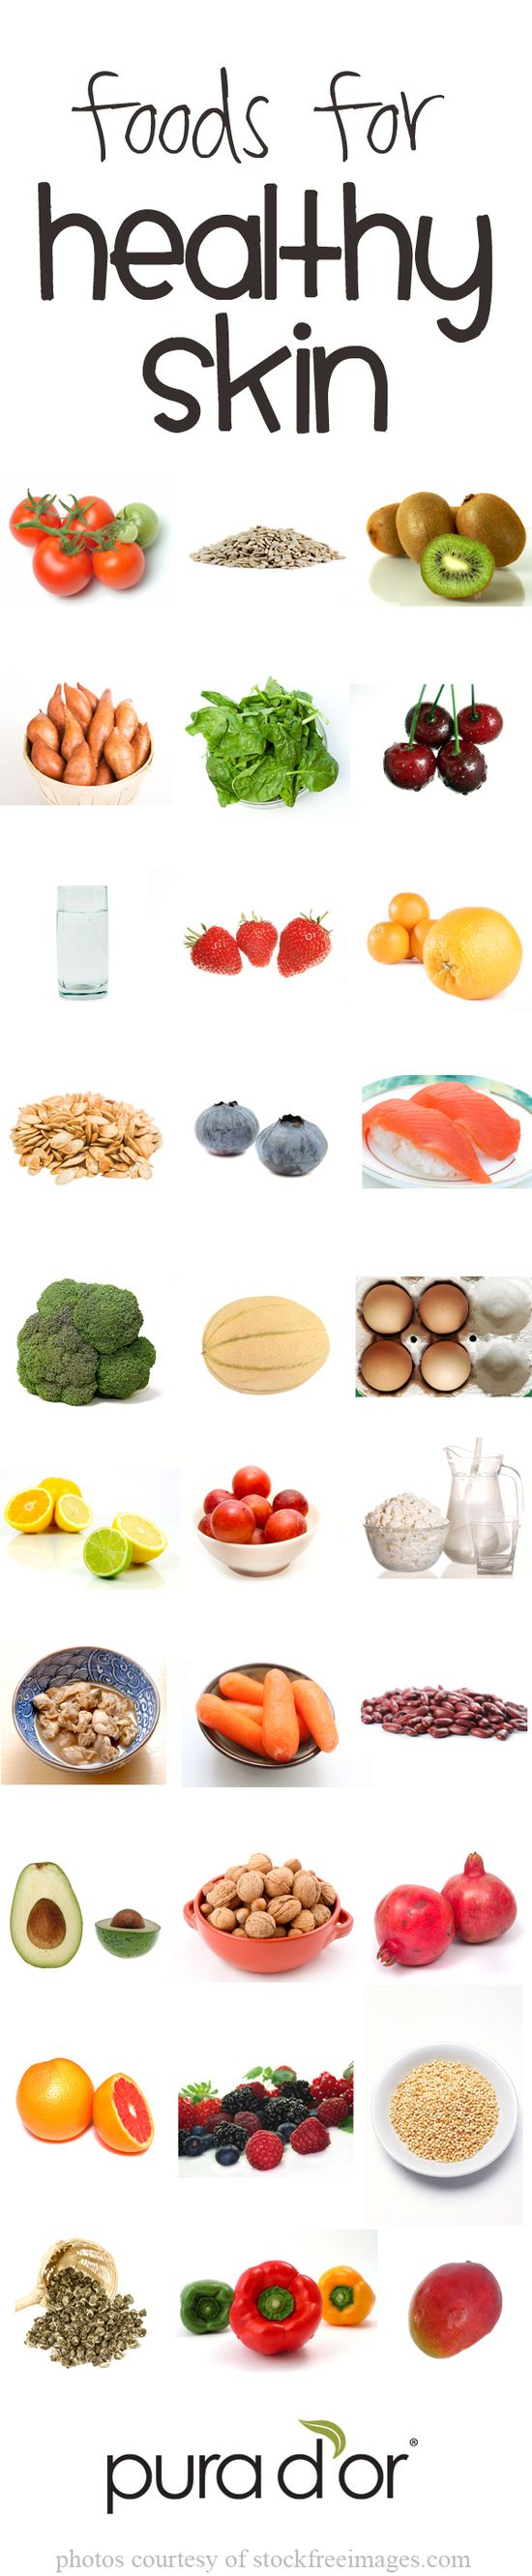 Awesome cheat sheet for #foods that are #healthy for #skin